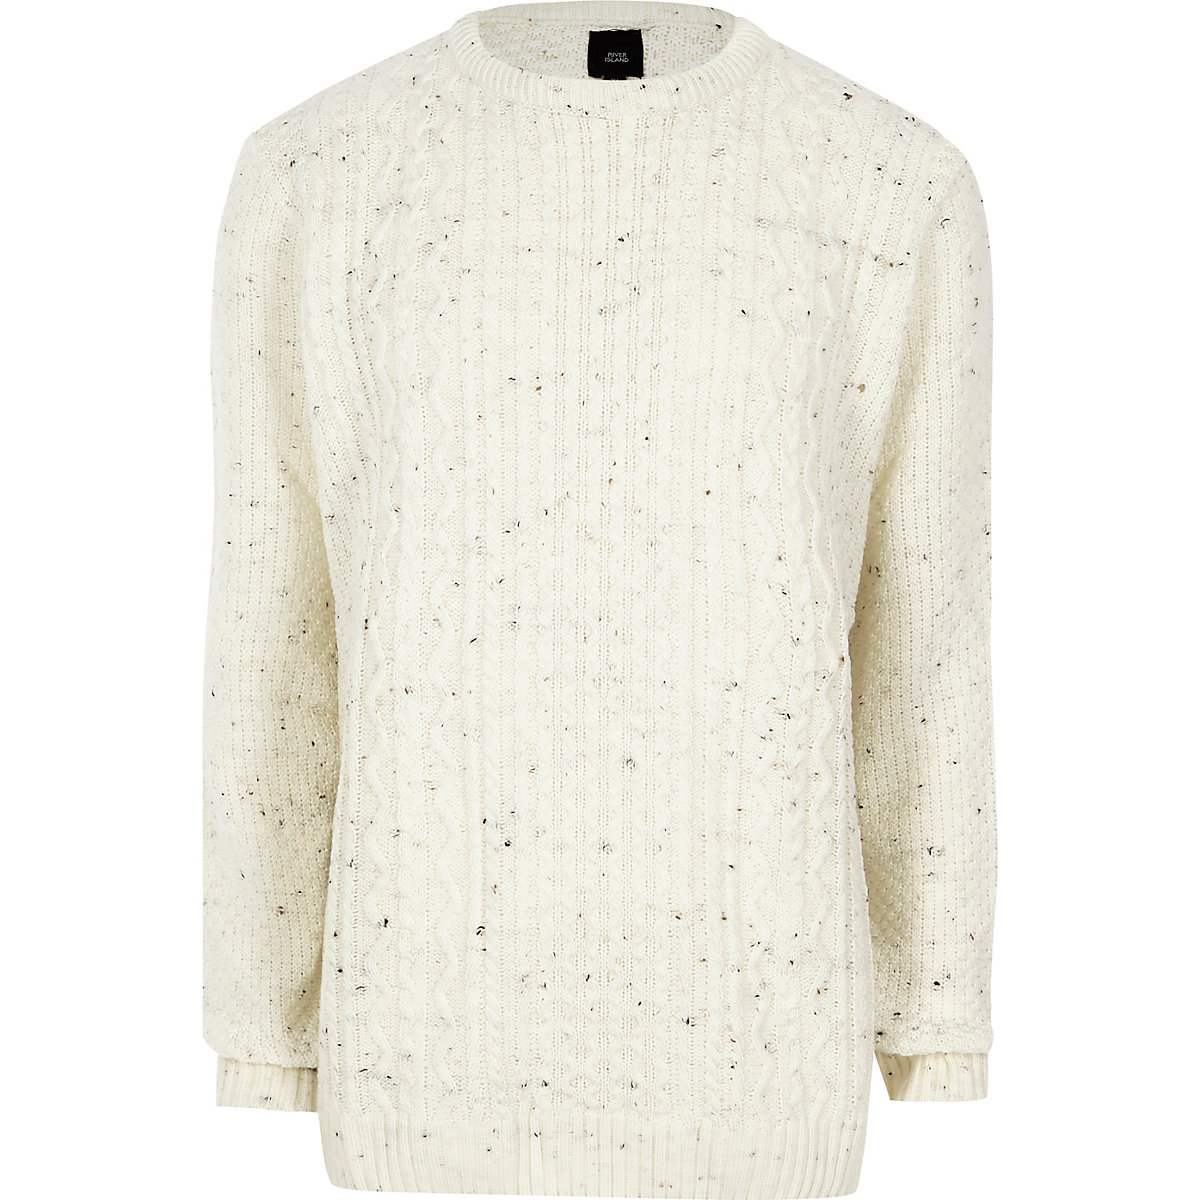 Big and Tall cream cable knit sweater